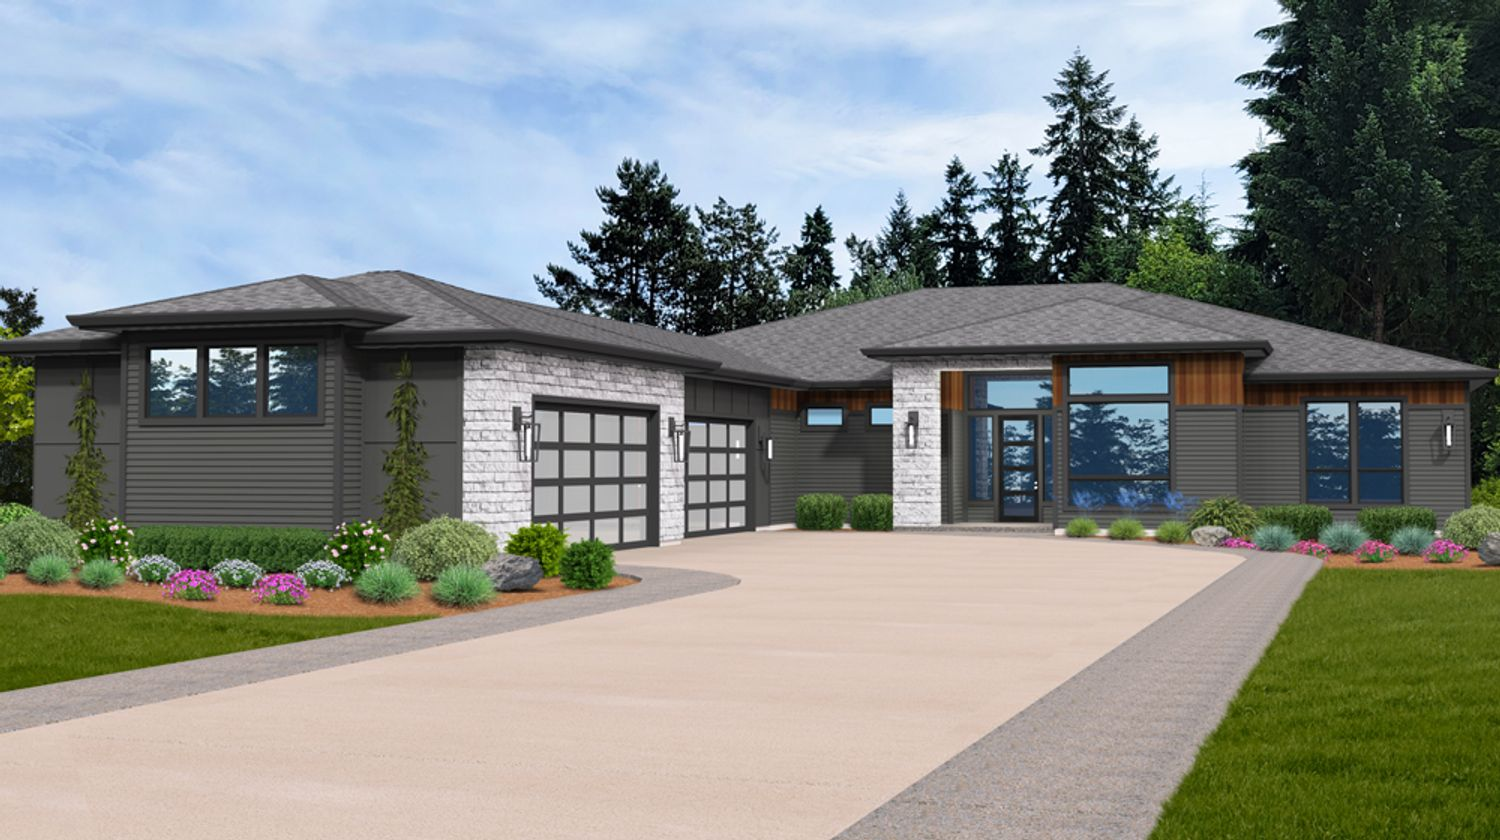 2021 Parade of Homes - The Solace House 7